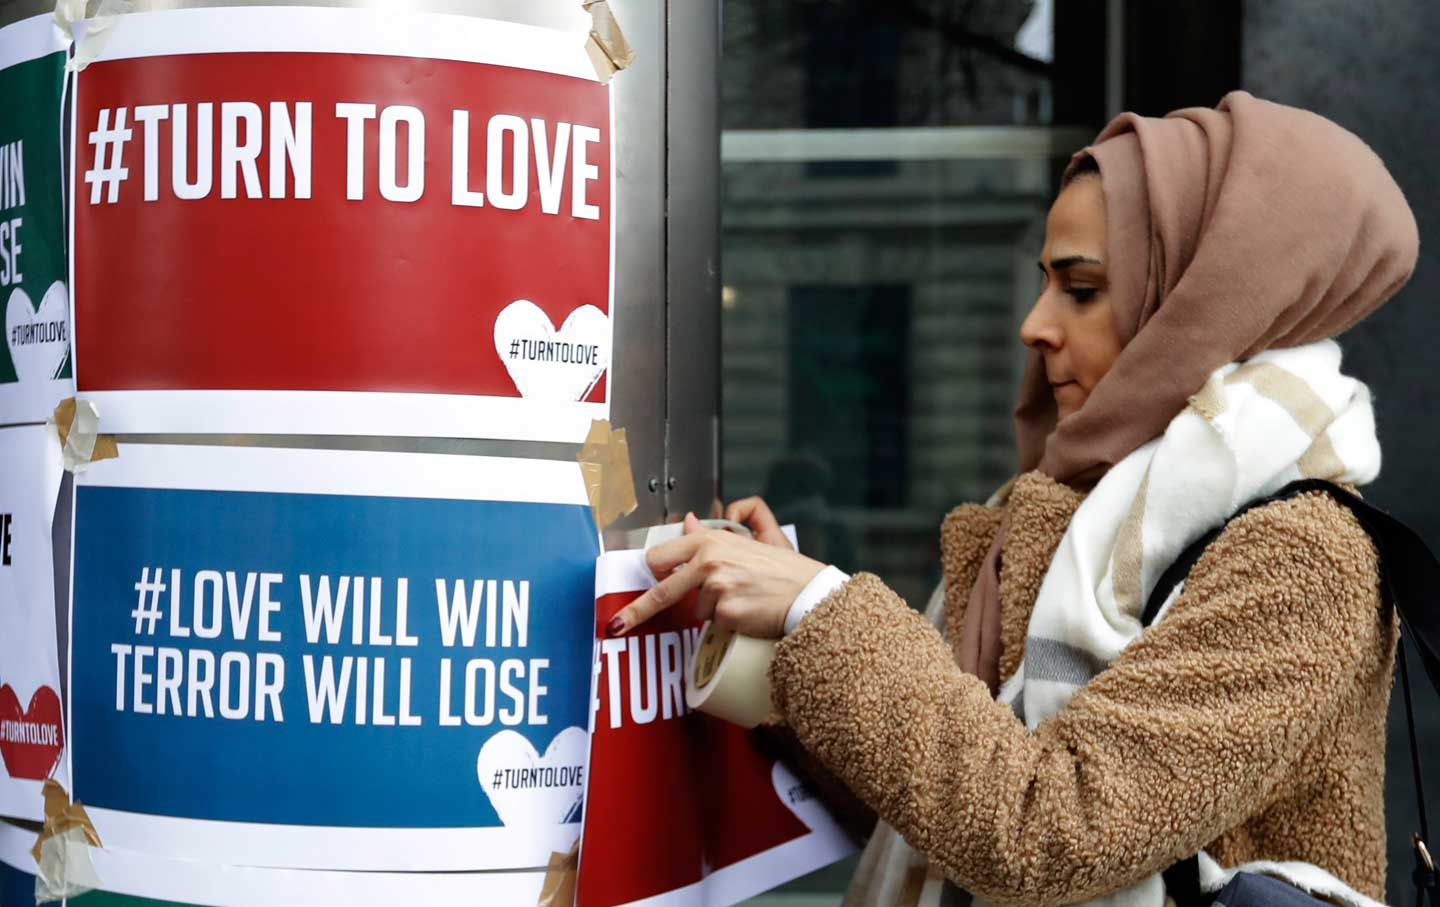 A demonstrator hangs banners from multi-faith group 'Turn to Love'